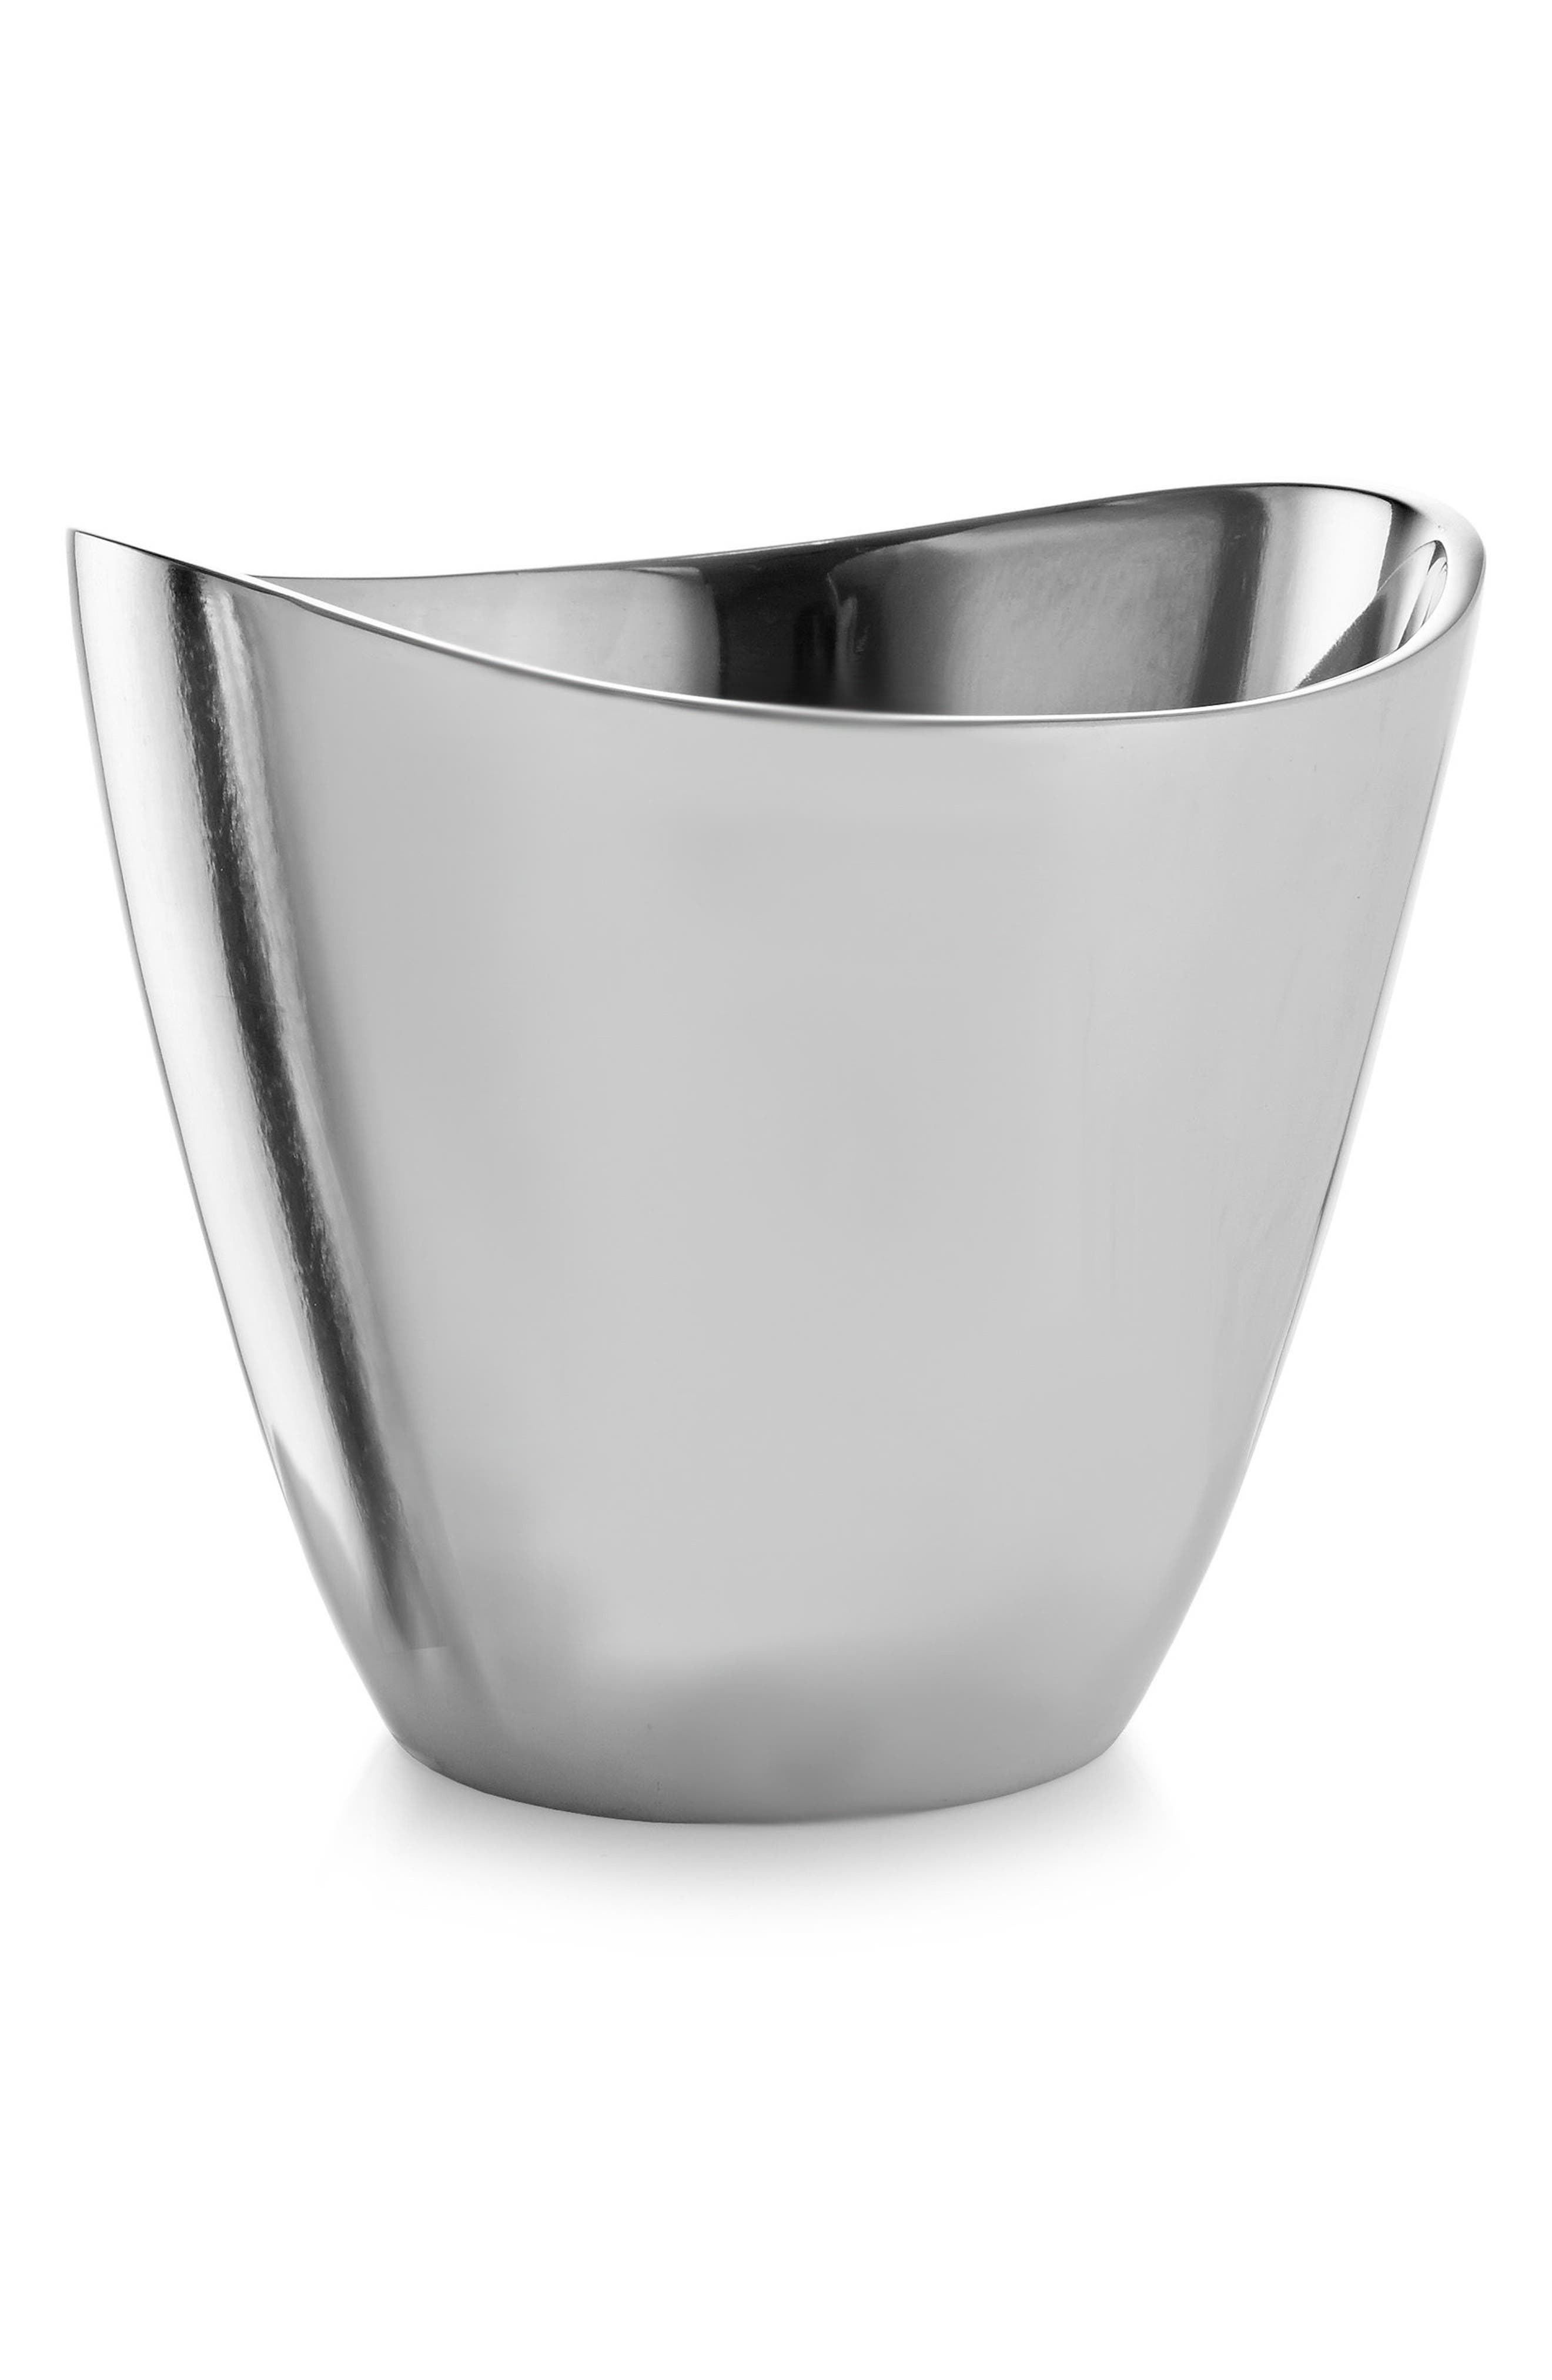 Vie Champagne Bucket,                             Main thumbnail 1, color,                             040